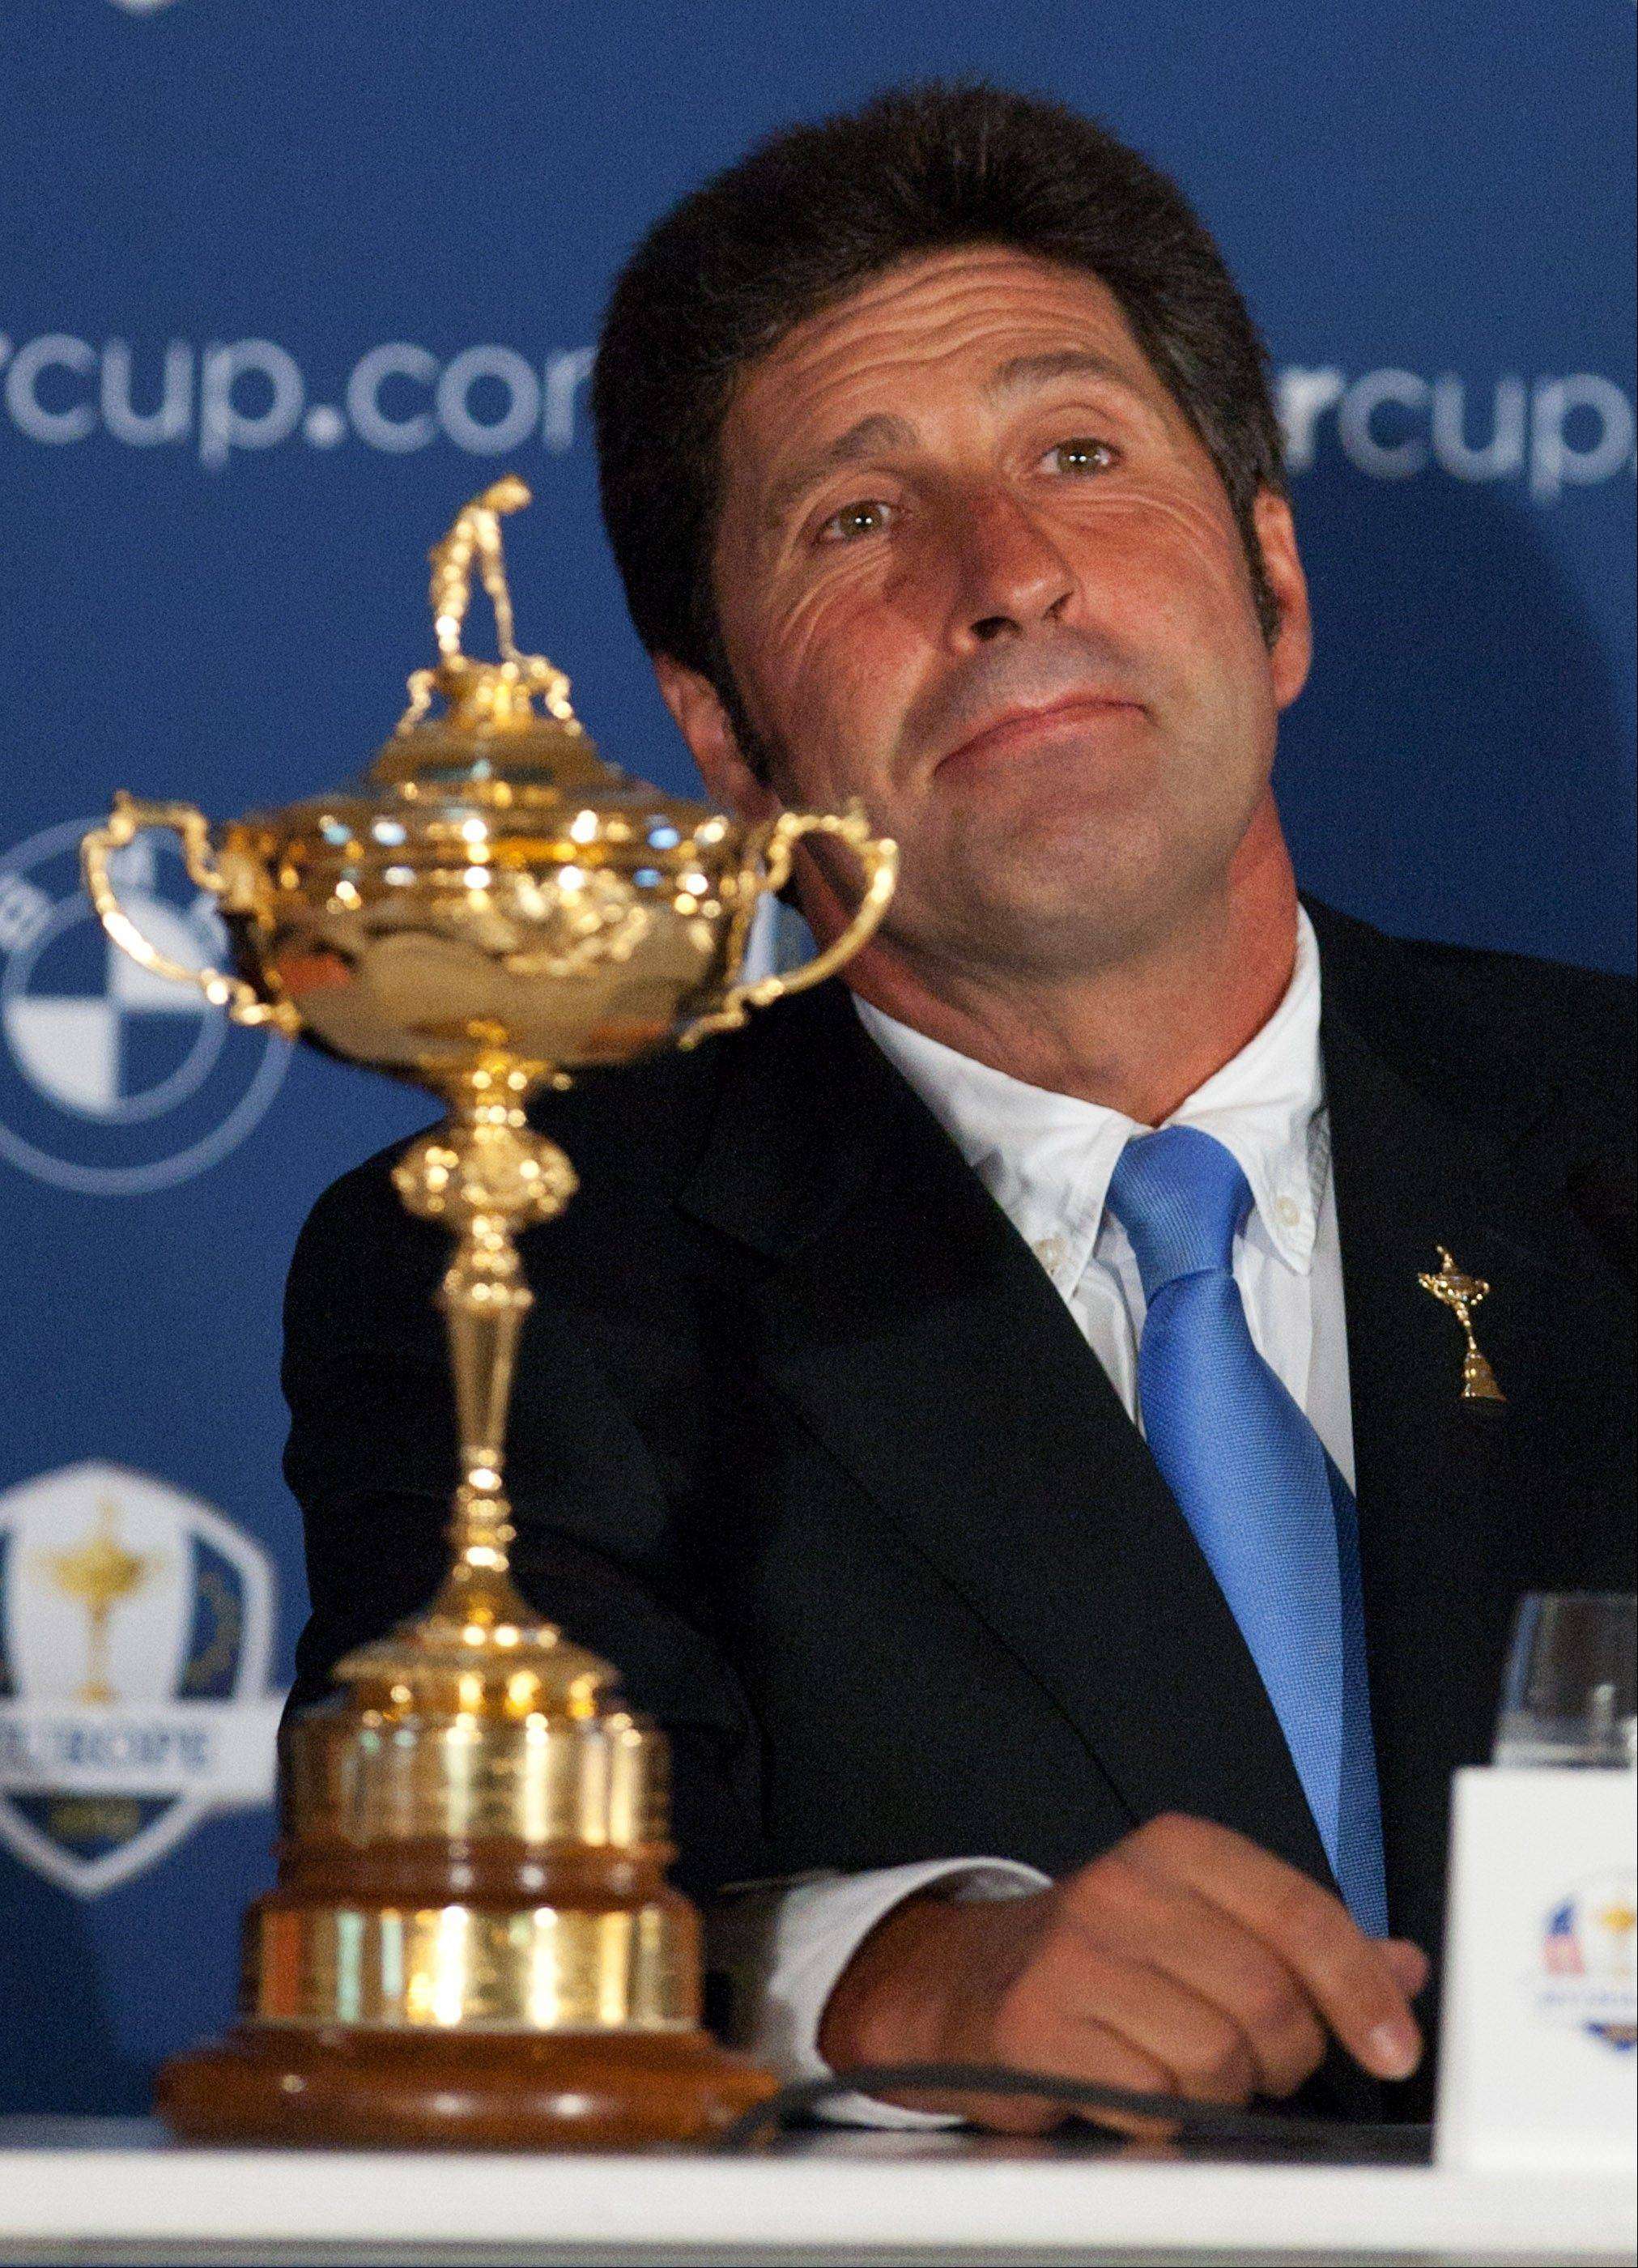 European team captain Jose Maria Olazabal has assembled a veteran team for the 2012 Ryder Cup at Medinah Country Club. Olazabal has only one rookie among his 12 players, and Europe has won four of the last five competitions.